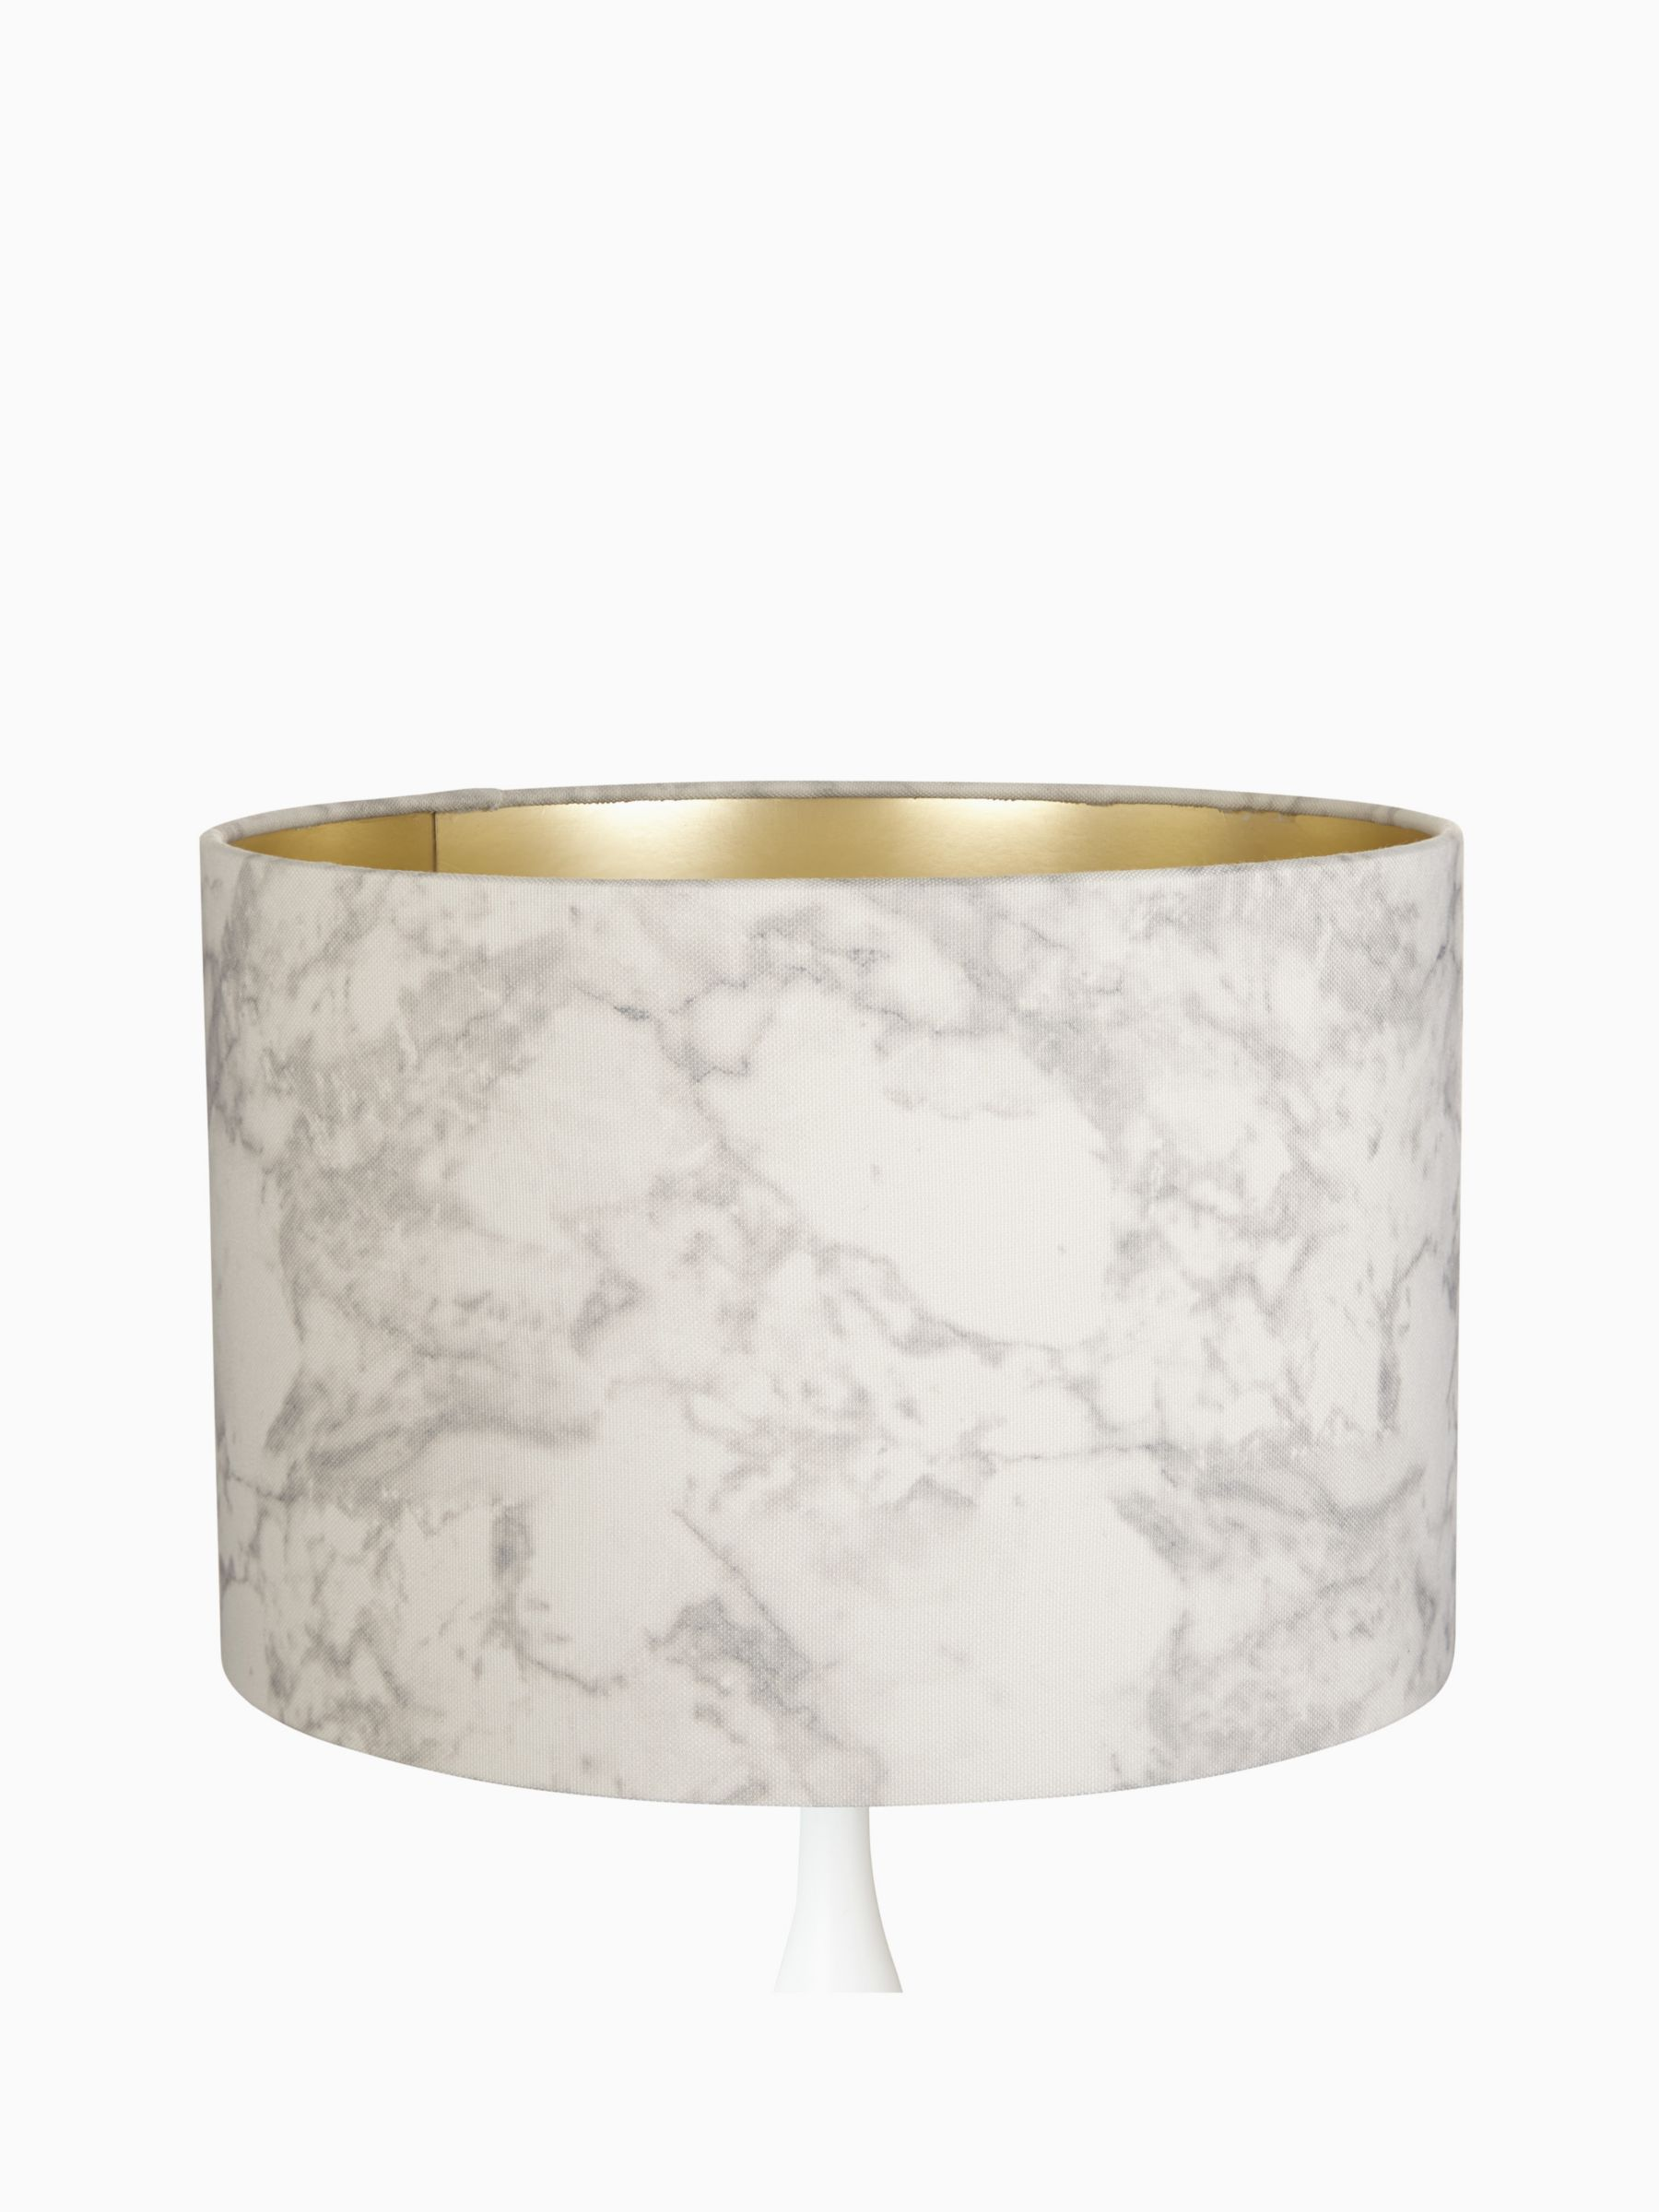 Ceiling lamp shades